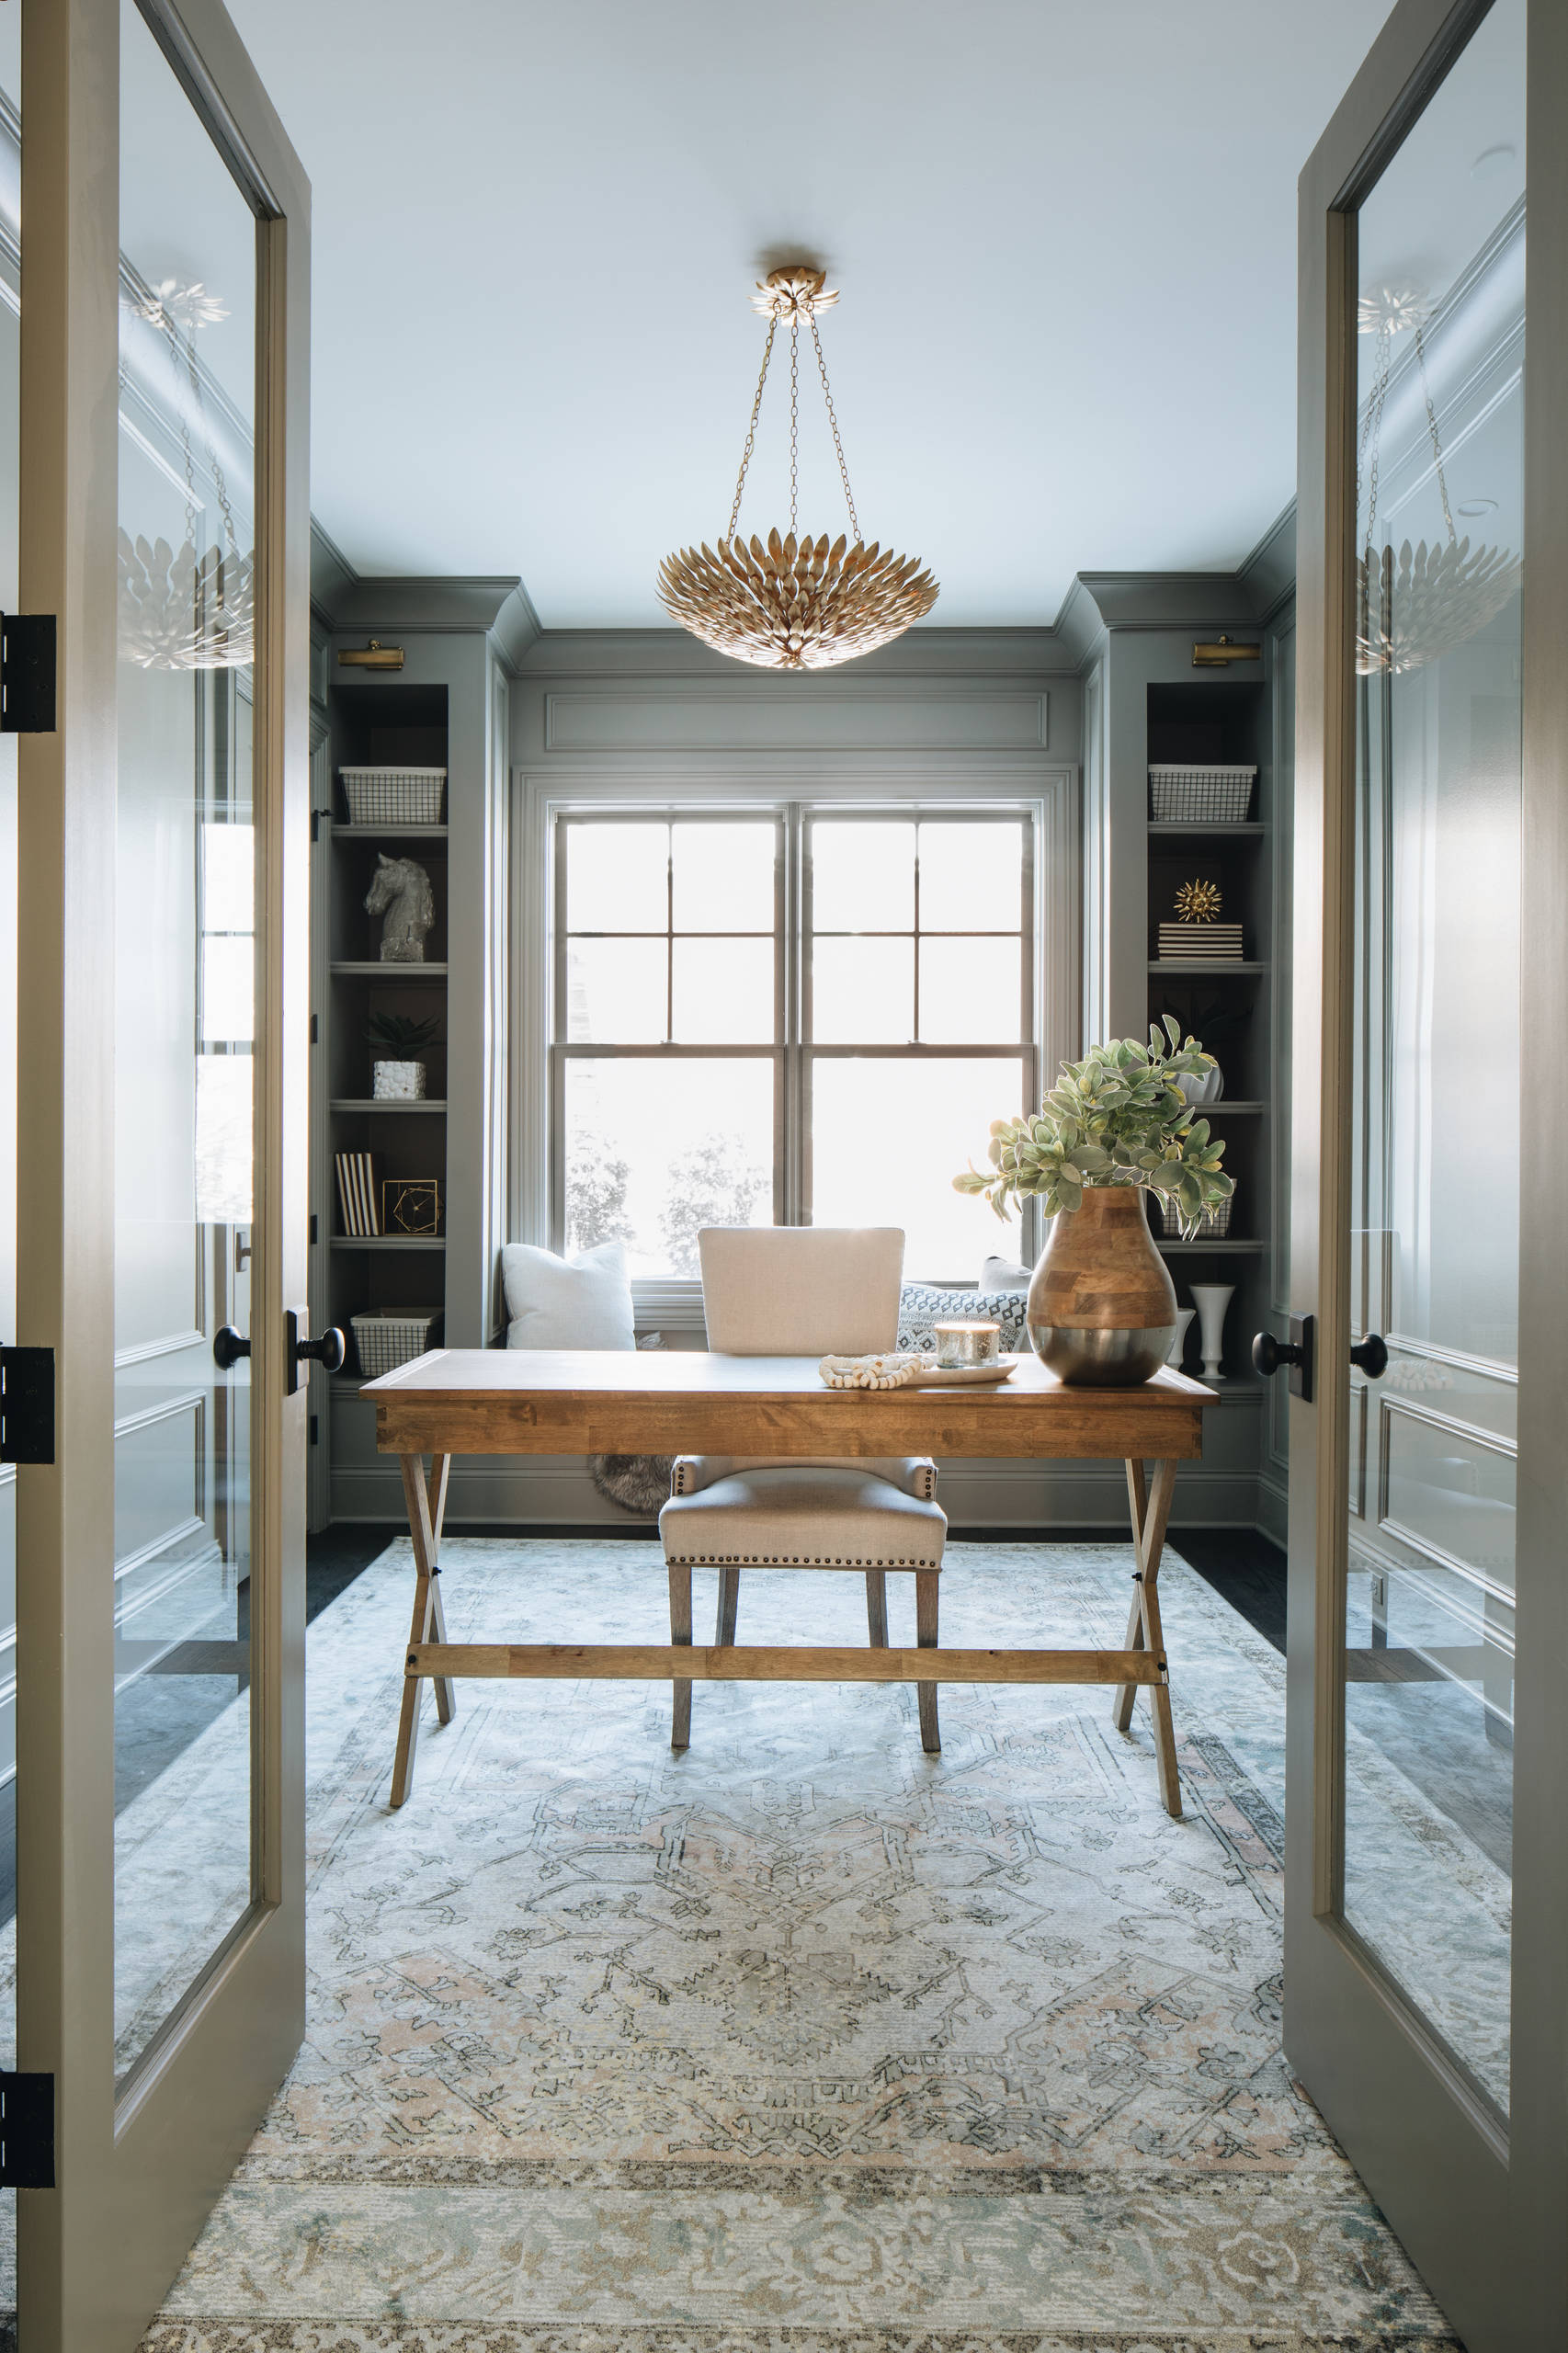 75 Beautiful Home Office Pictures Ideas May 2021 Houzz